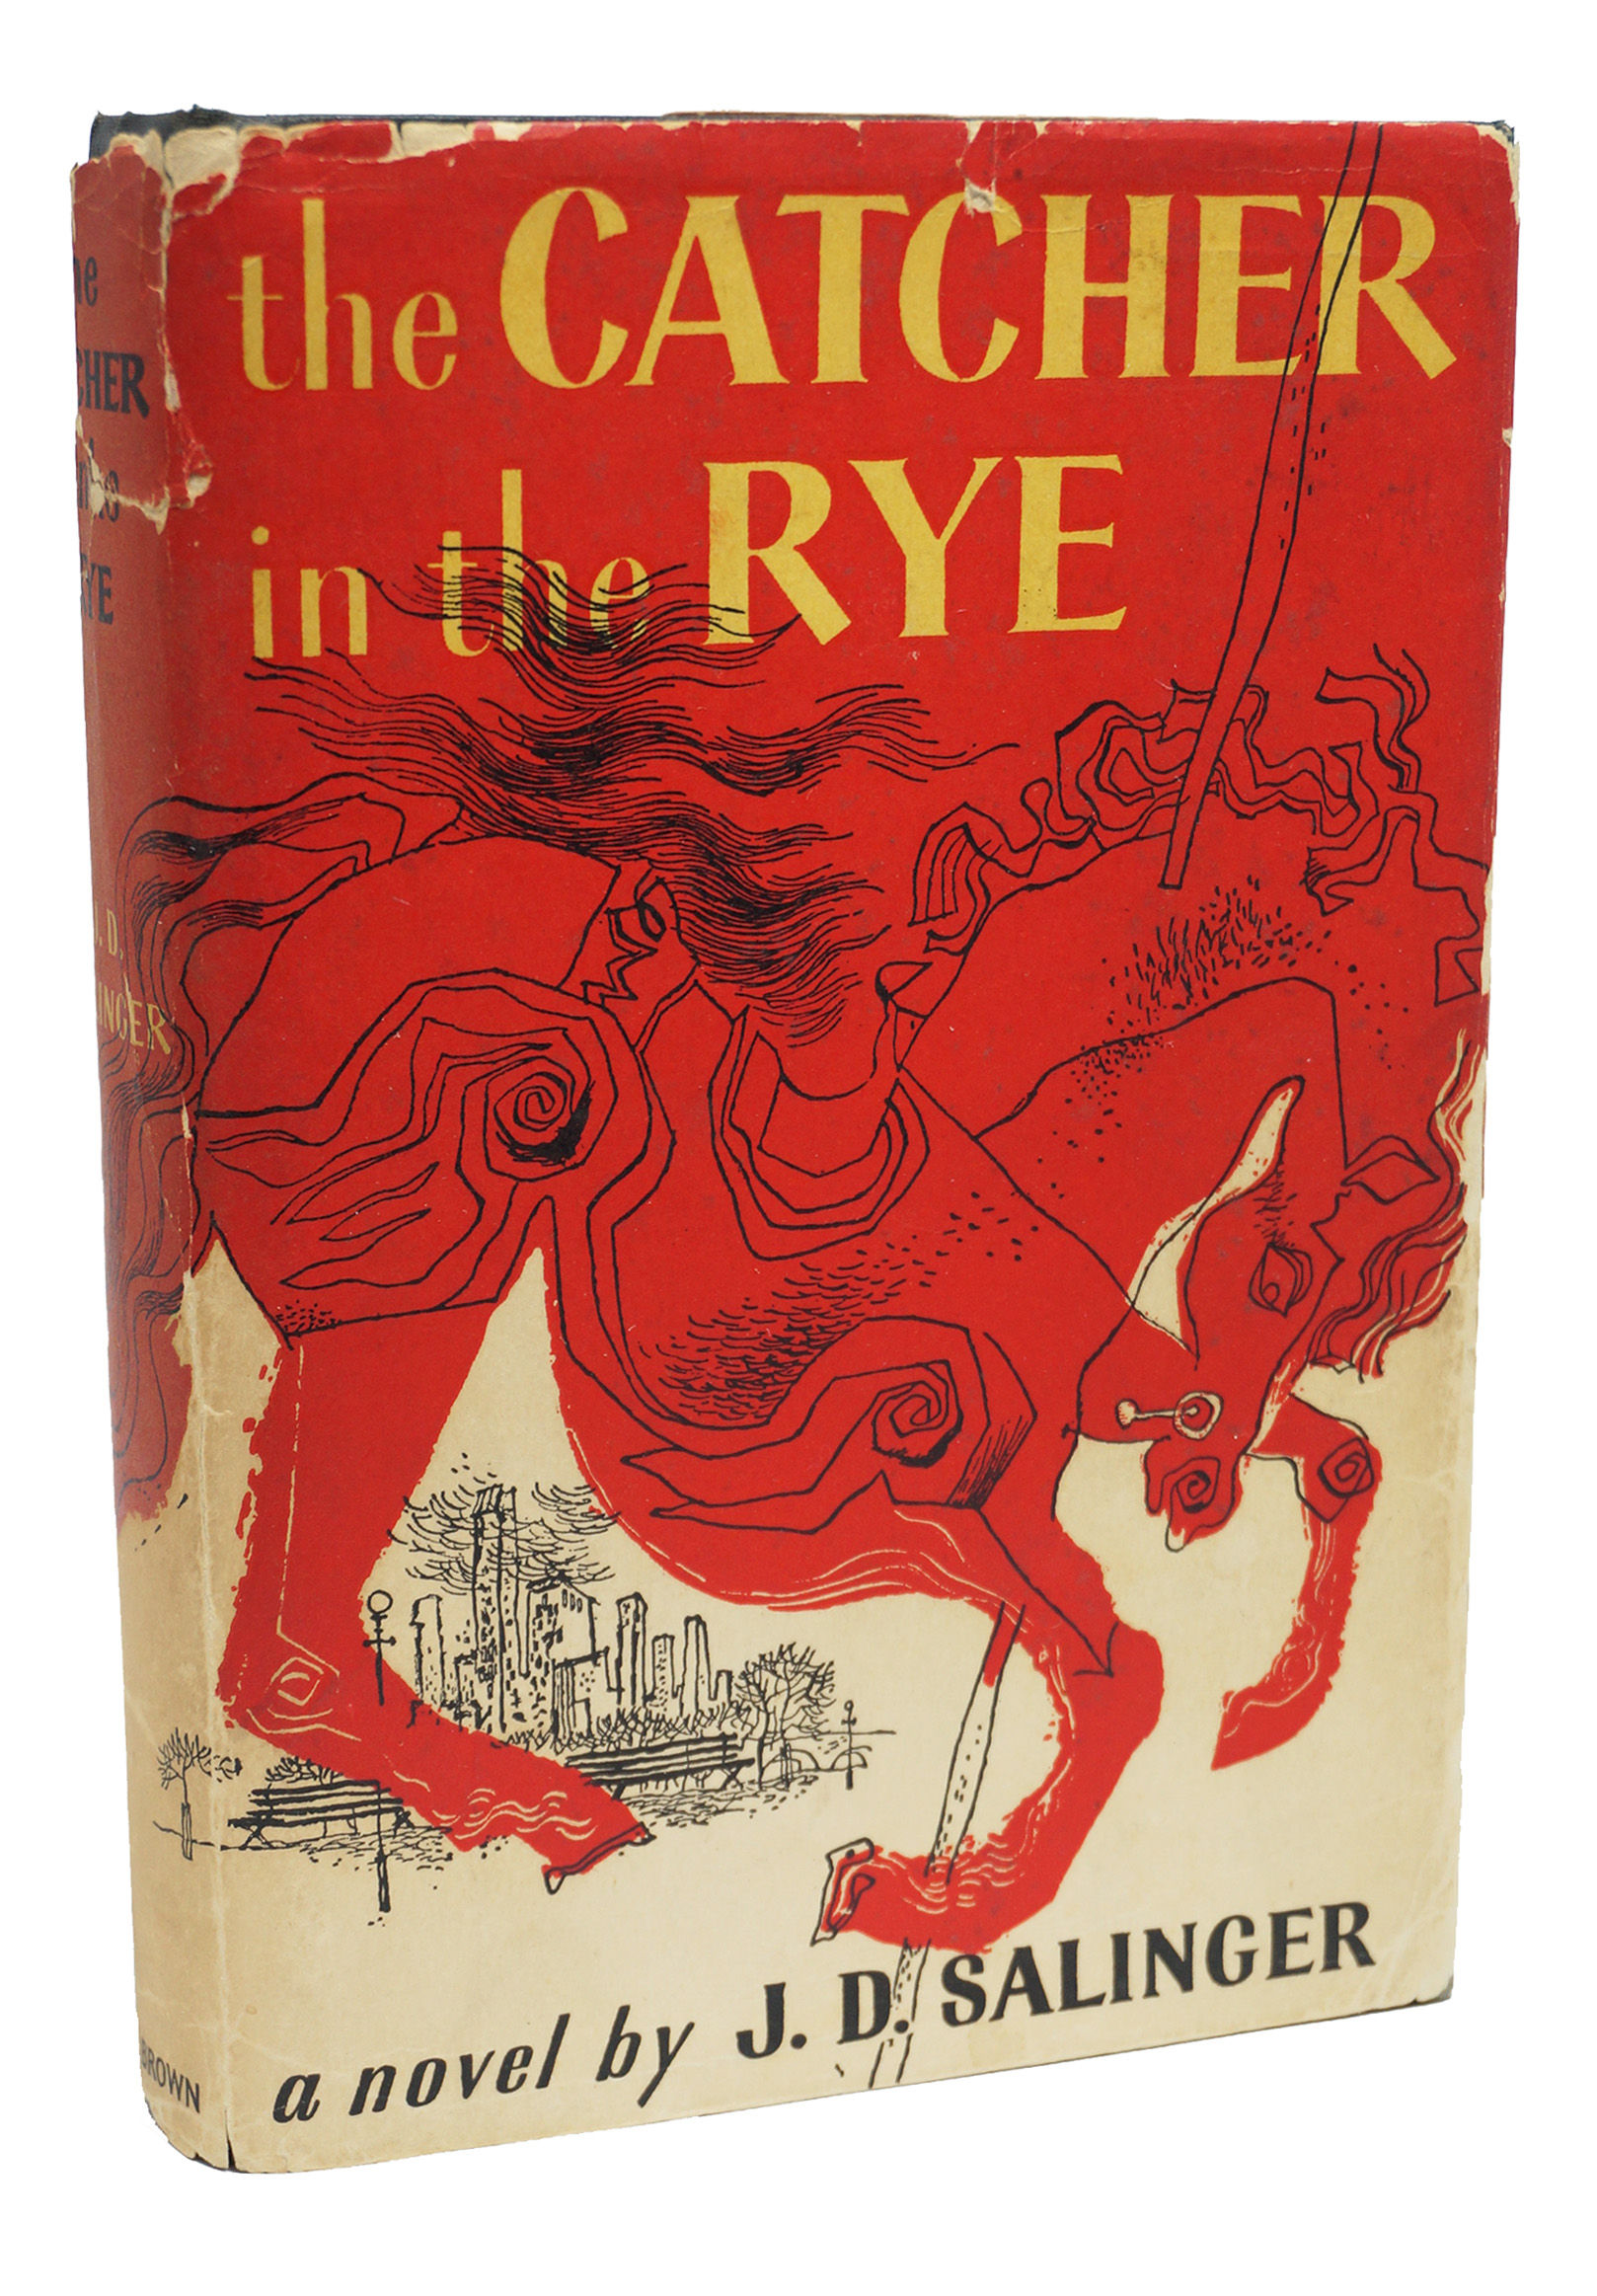 j d salinger influence on modern literature Salinger's unpublished manuscripts comprise a remarkable literary heritage that, if they are ever published, could establish him as a giant of modern literature.